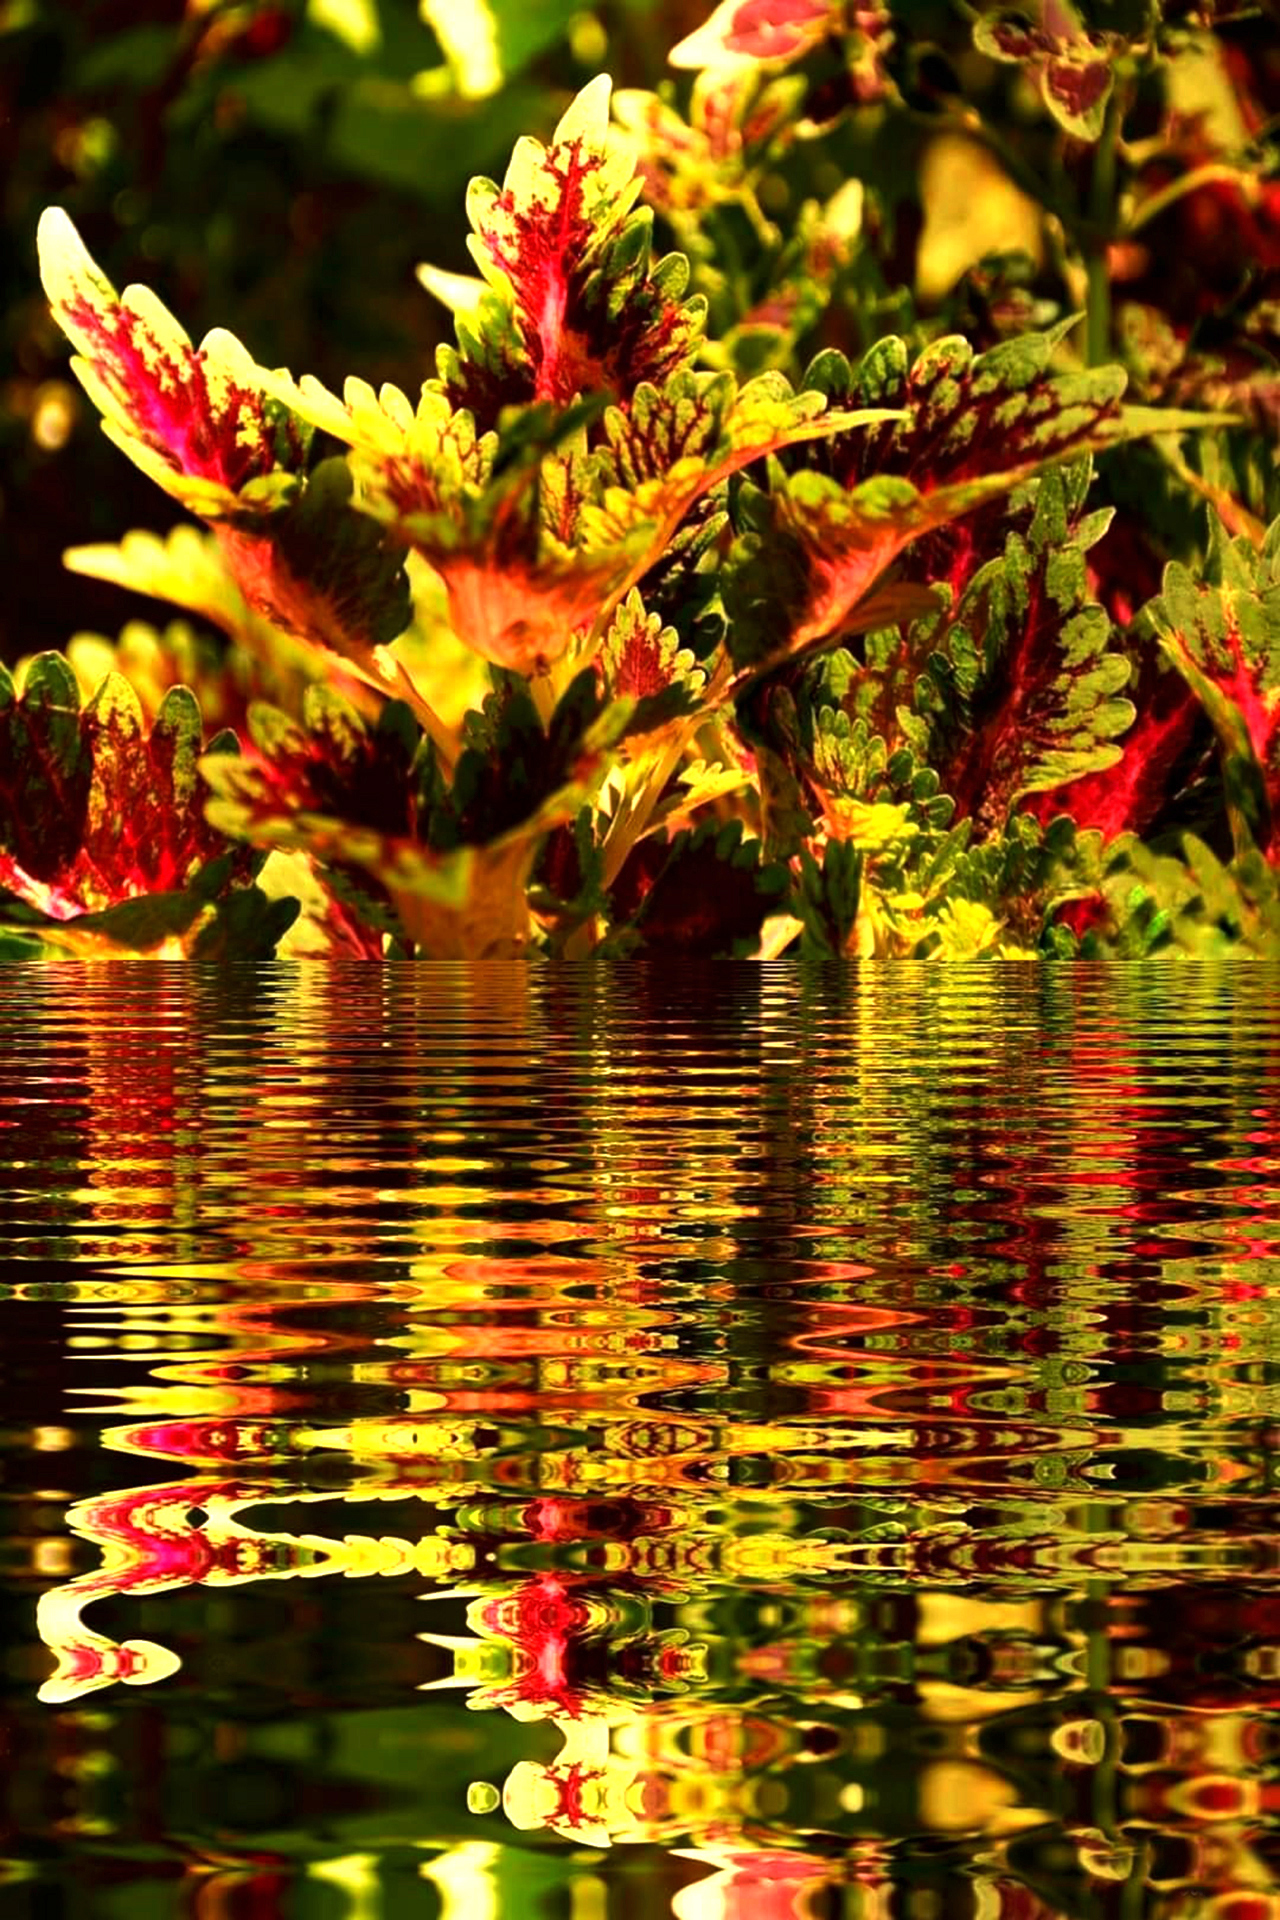 Colorful Plant Leaves Reflection on Waters